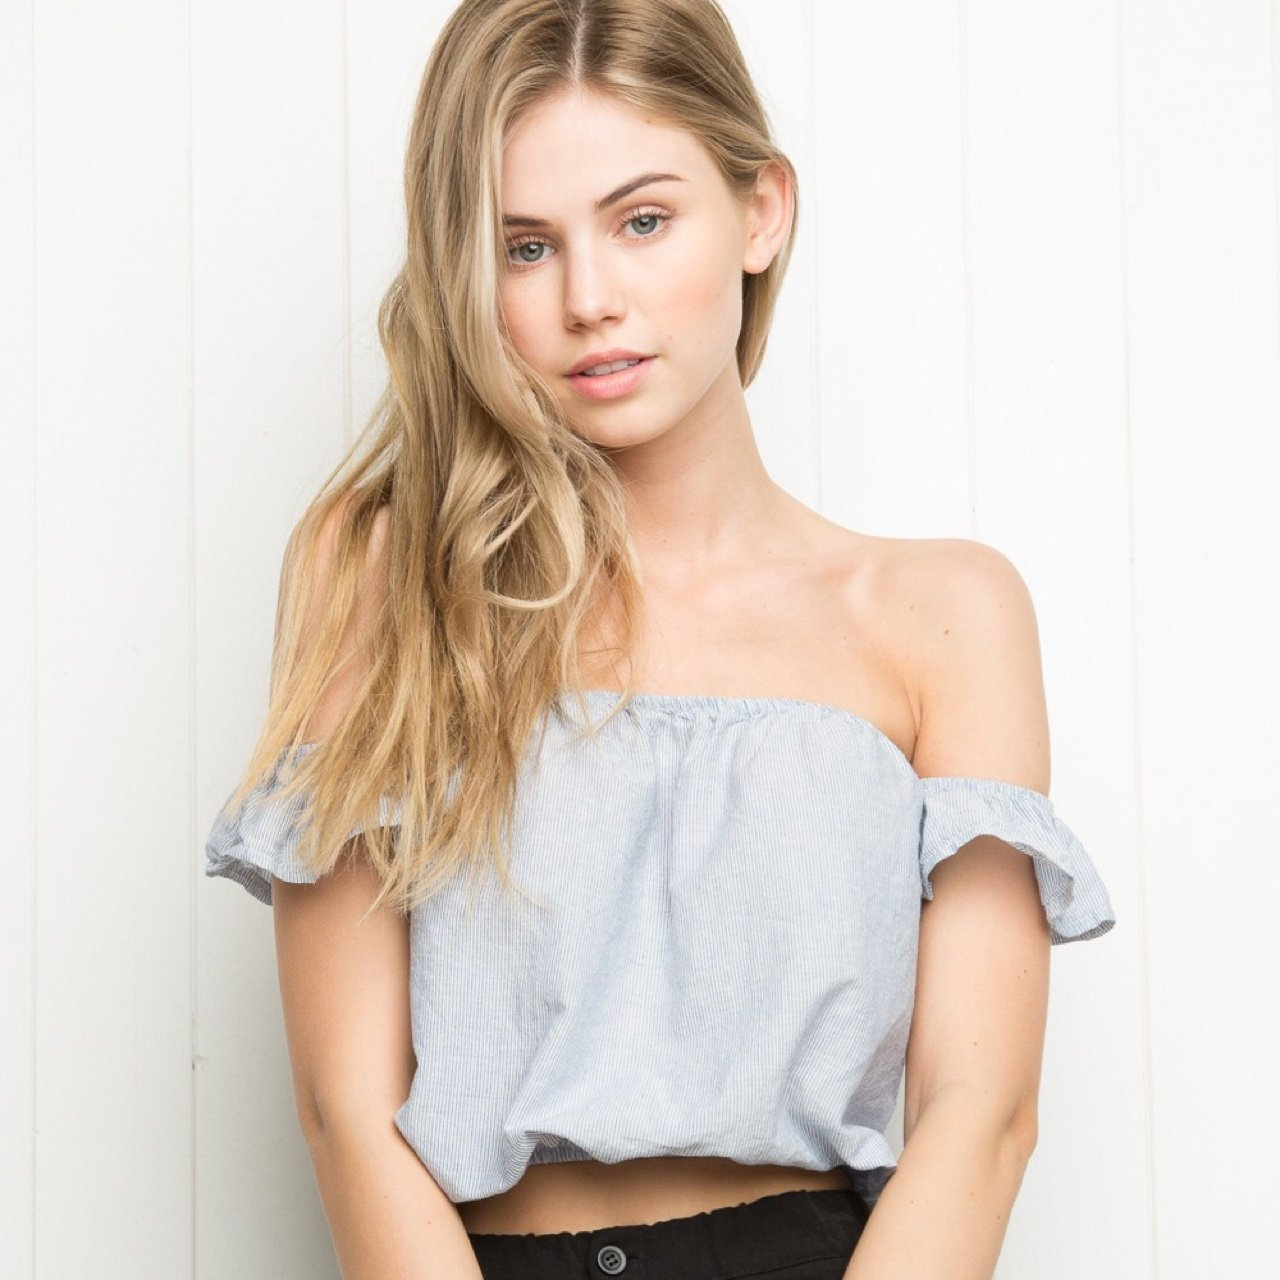 da8f308225 Brandy Melville    BRAND NEW WITH TAGS    never worn    top - Depop